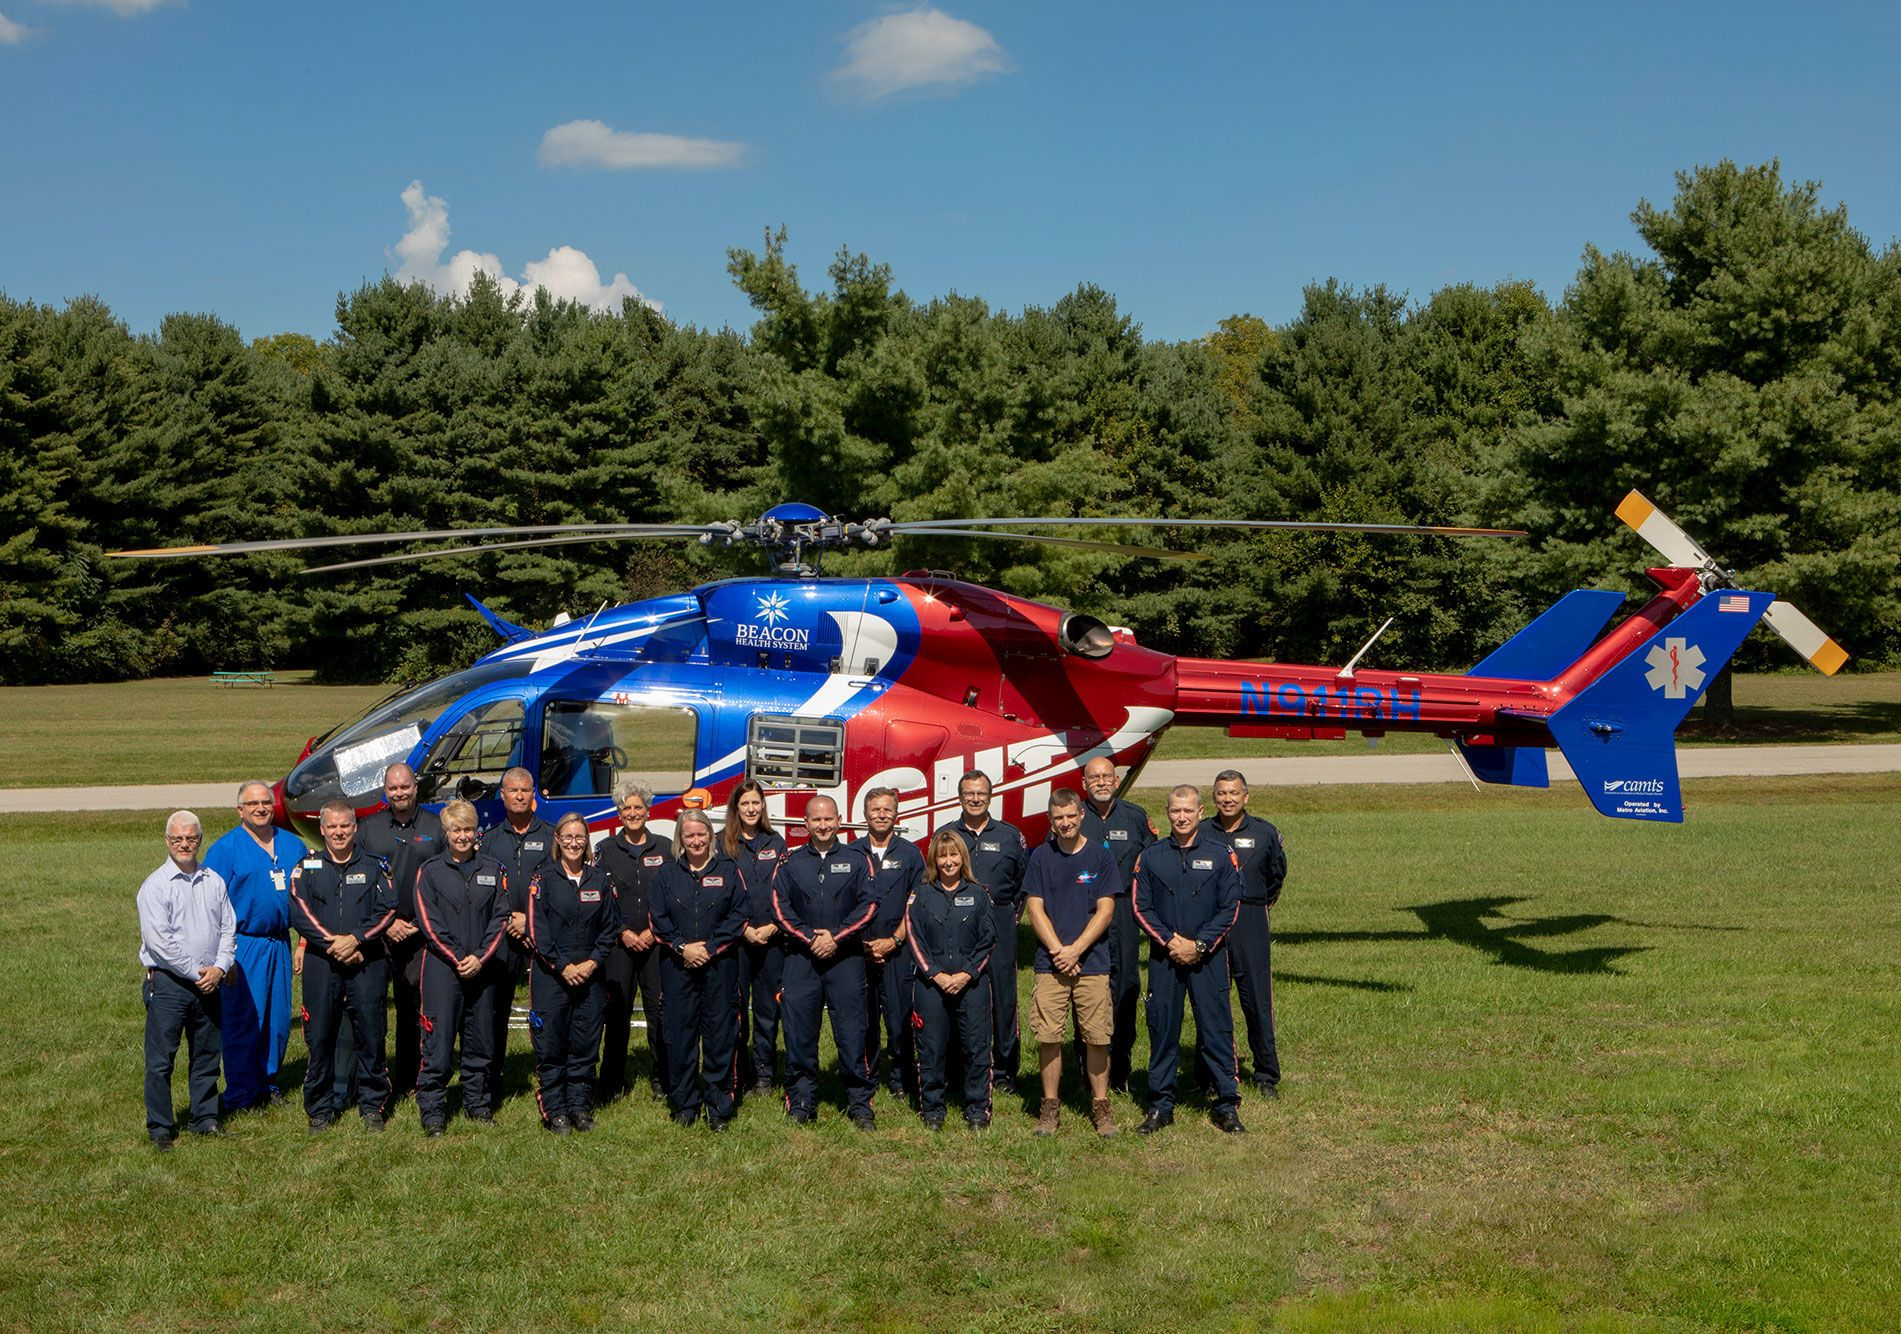 Memorial Mediflight team posing alongside the Medflight helicopter